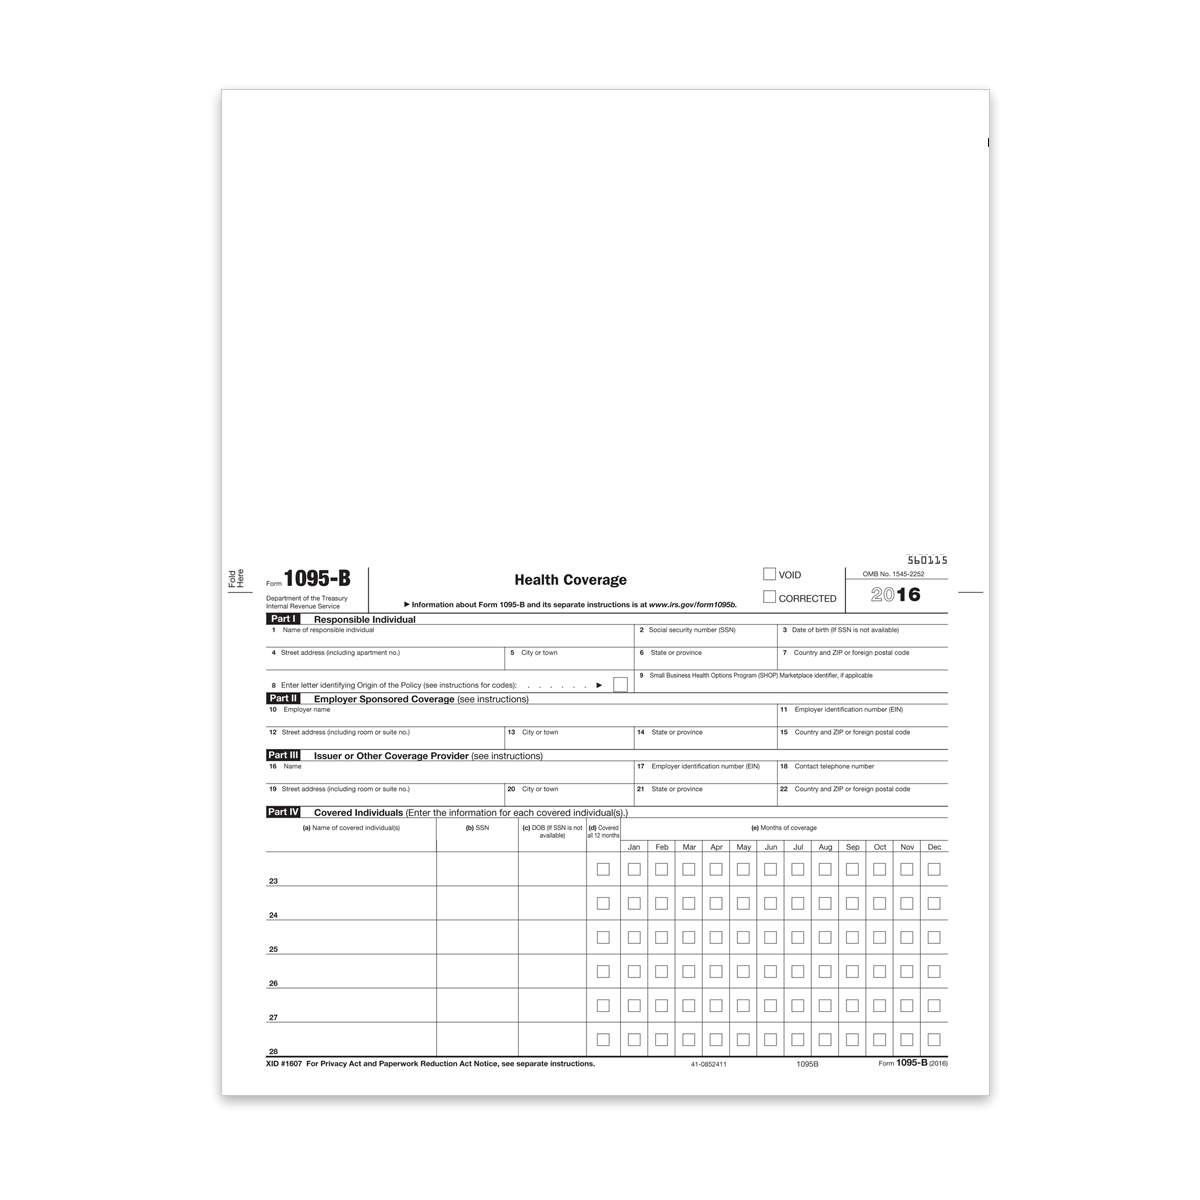 Form 1095B - Health Coverage